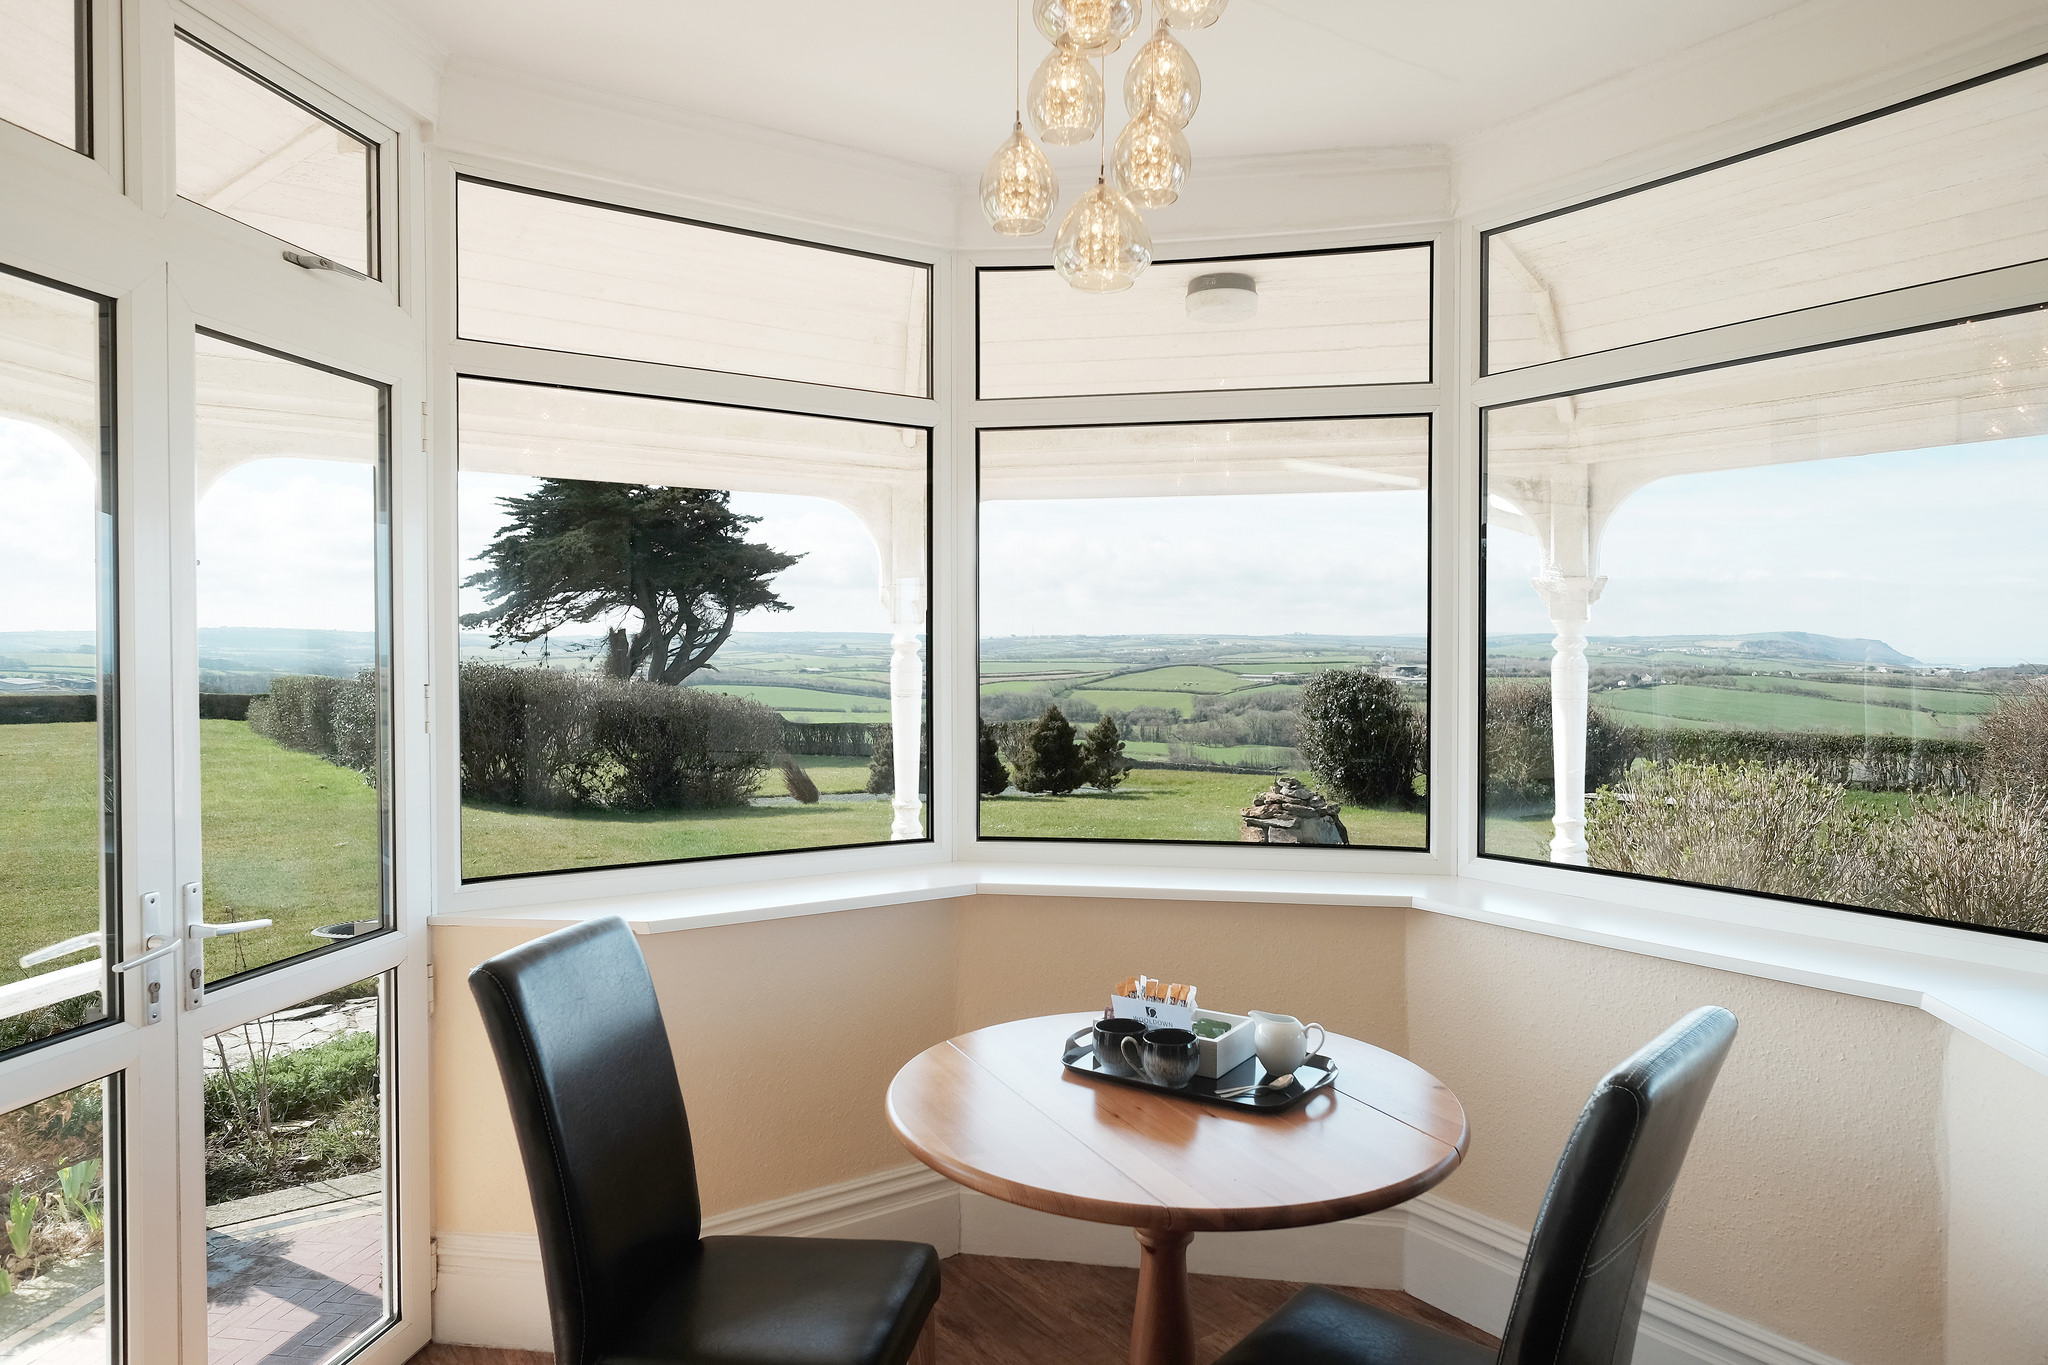 Dining area for two with views of the lawn and rolling countryside